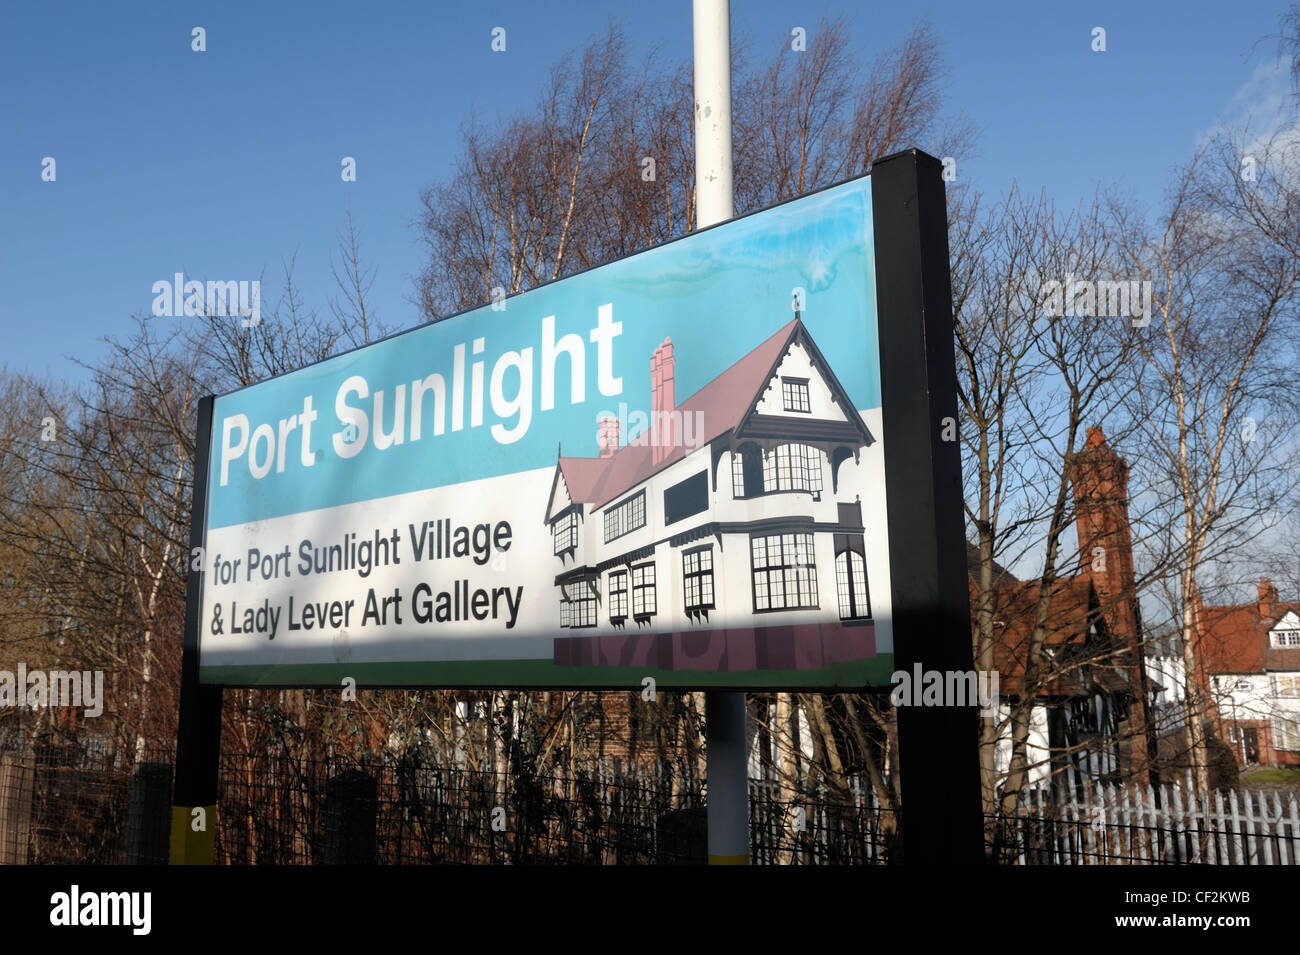 Port Sunlight Village and Lady Lever Art Gallery Sign - Stock Image